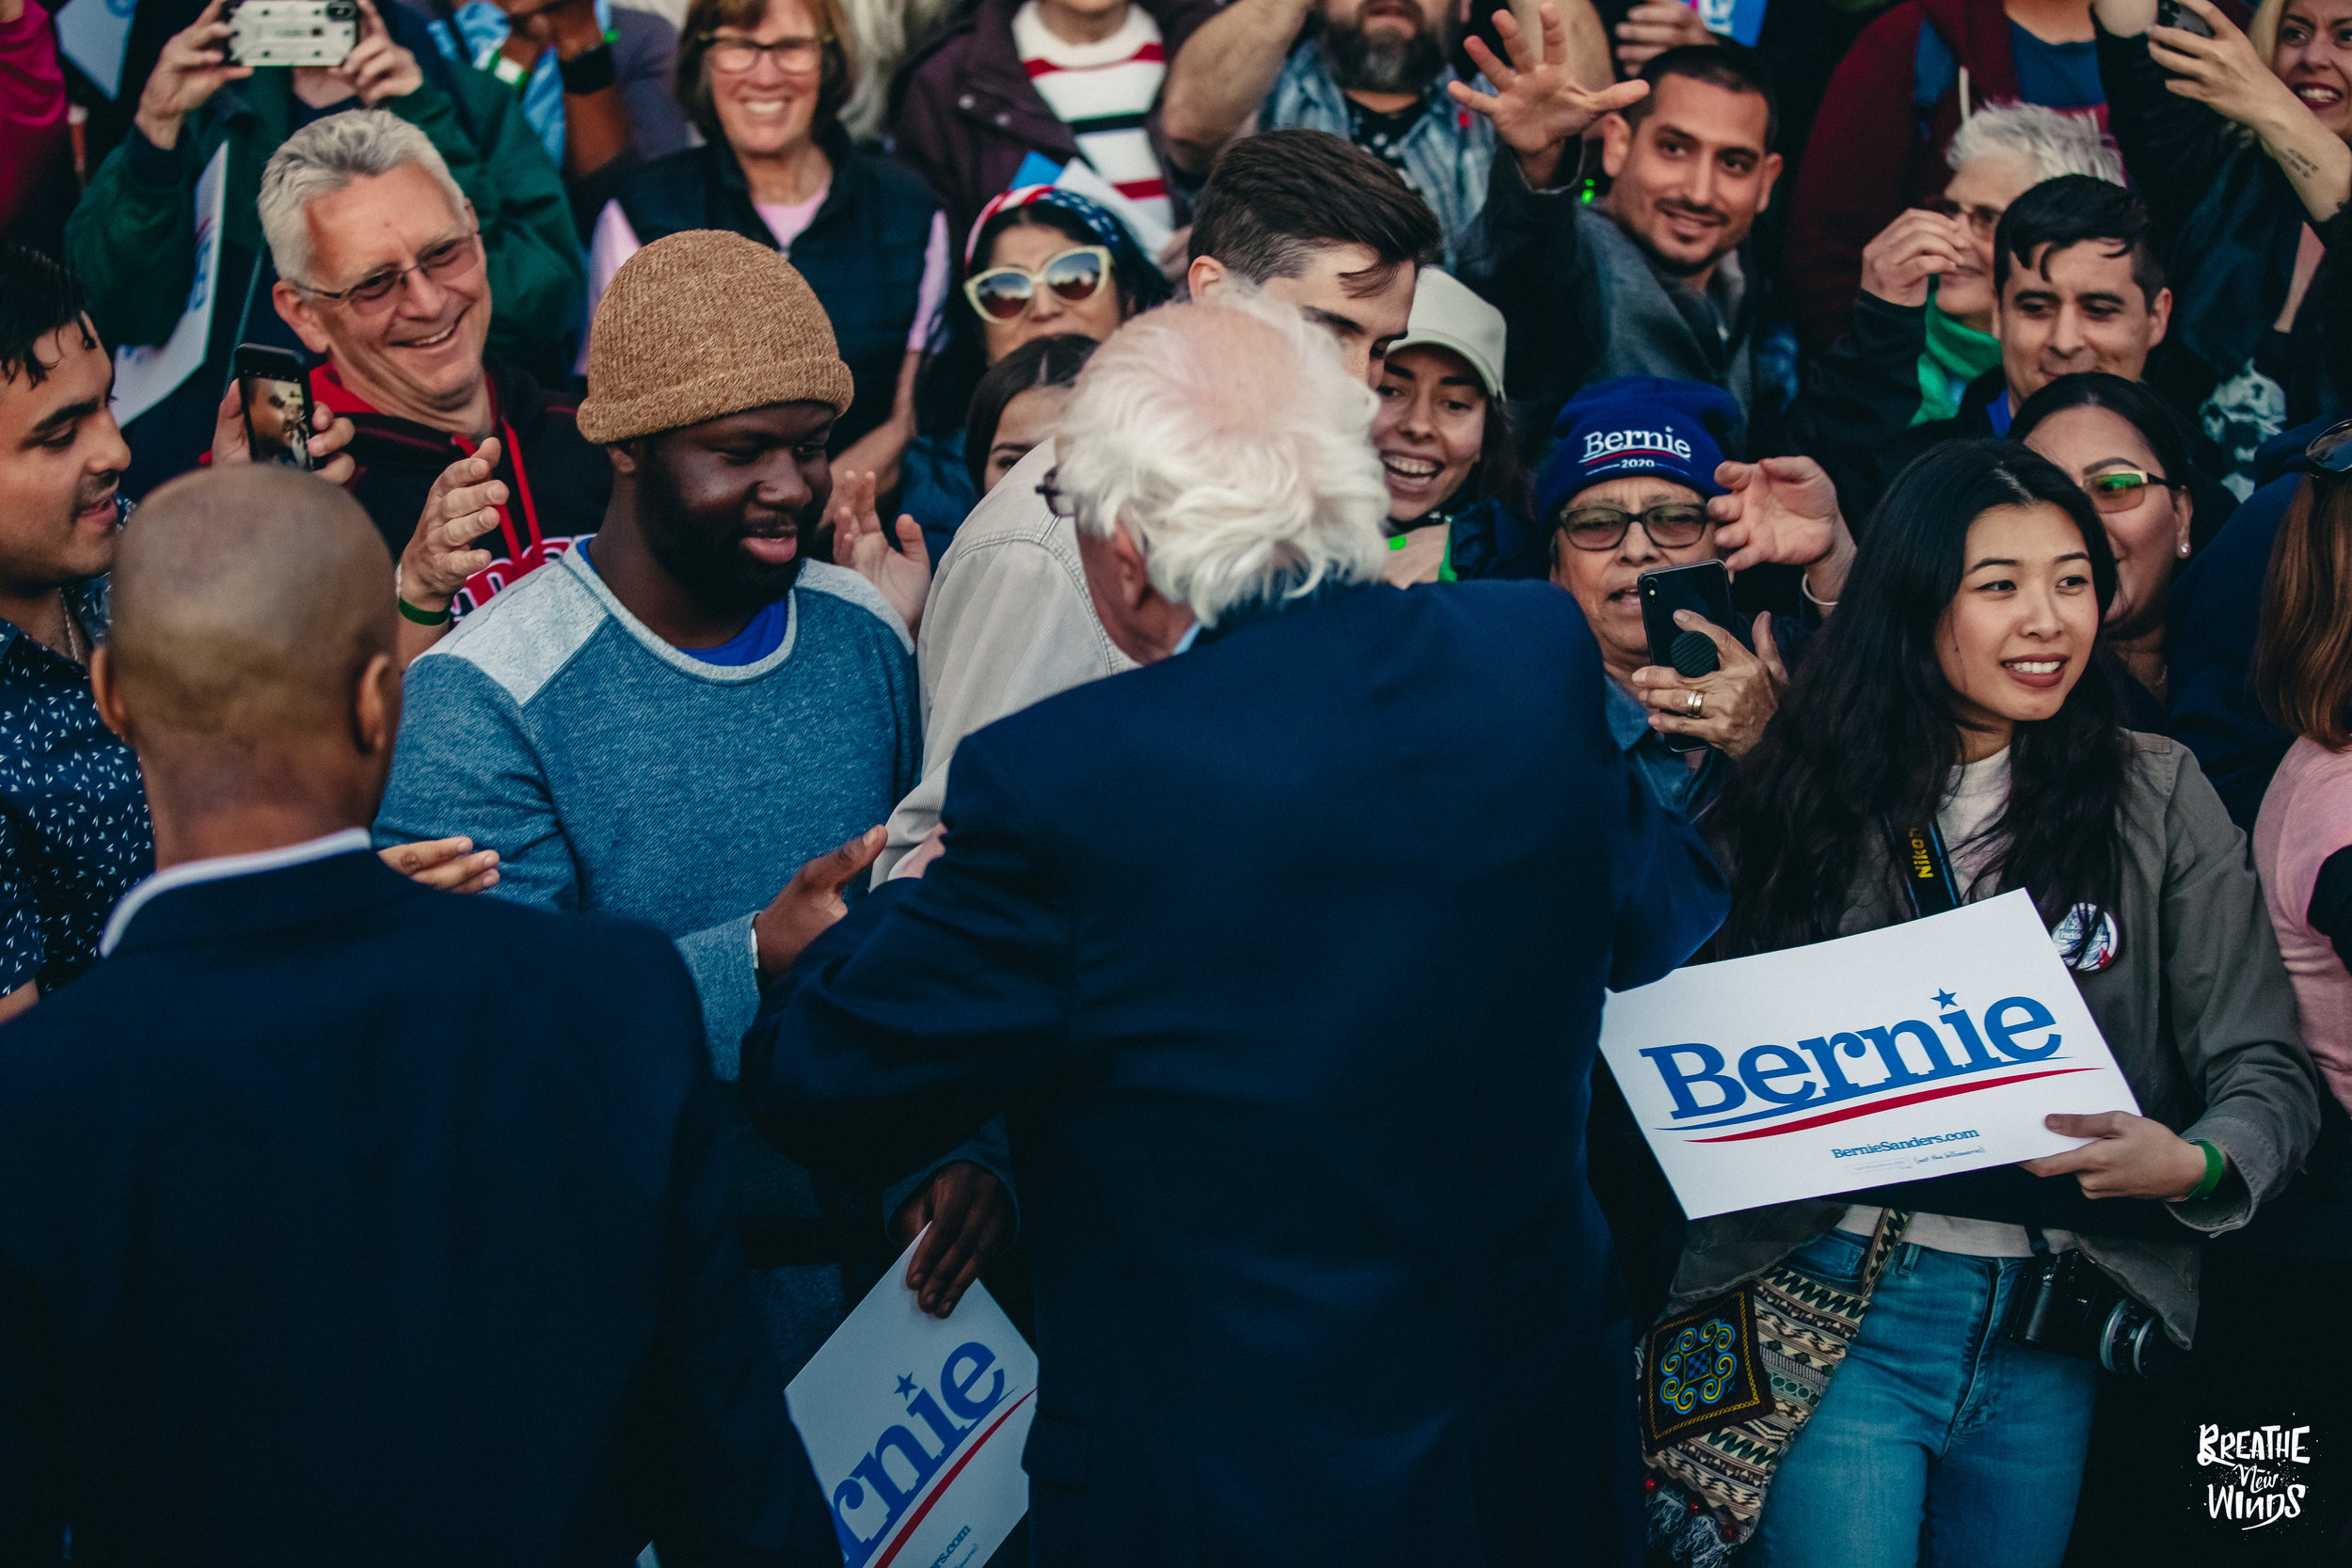 BernieInSD_22March2019-BernieAndFriends (77 of 78).jpg